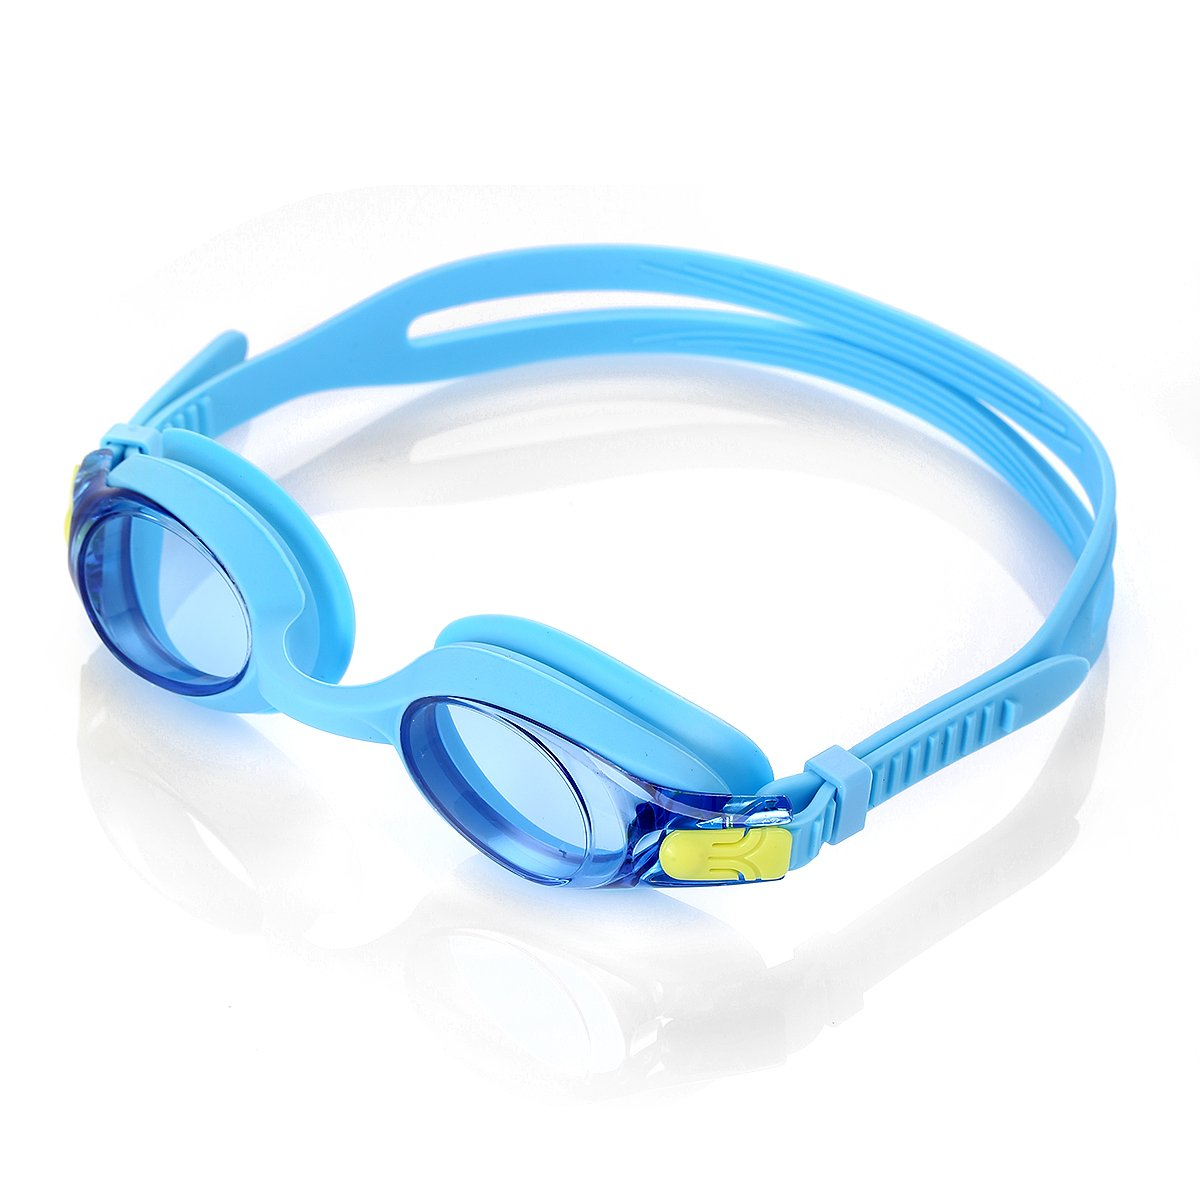 71c68e9a2ad Top 10 Best Swimming Goggles for Kids Reviews 2019-2020 on Flipboard ...